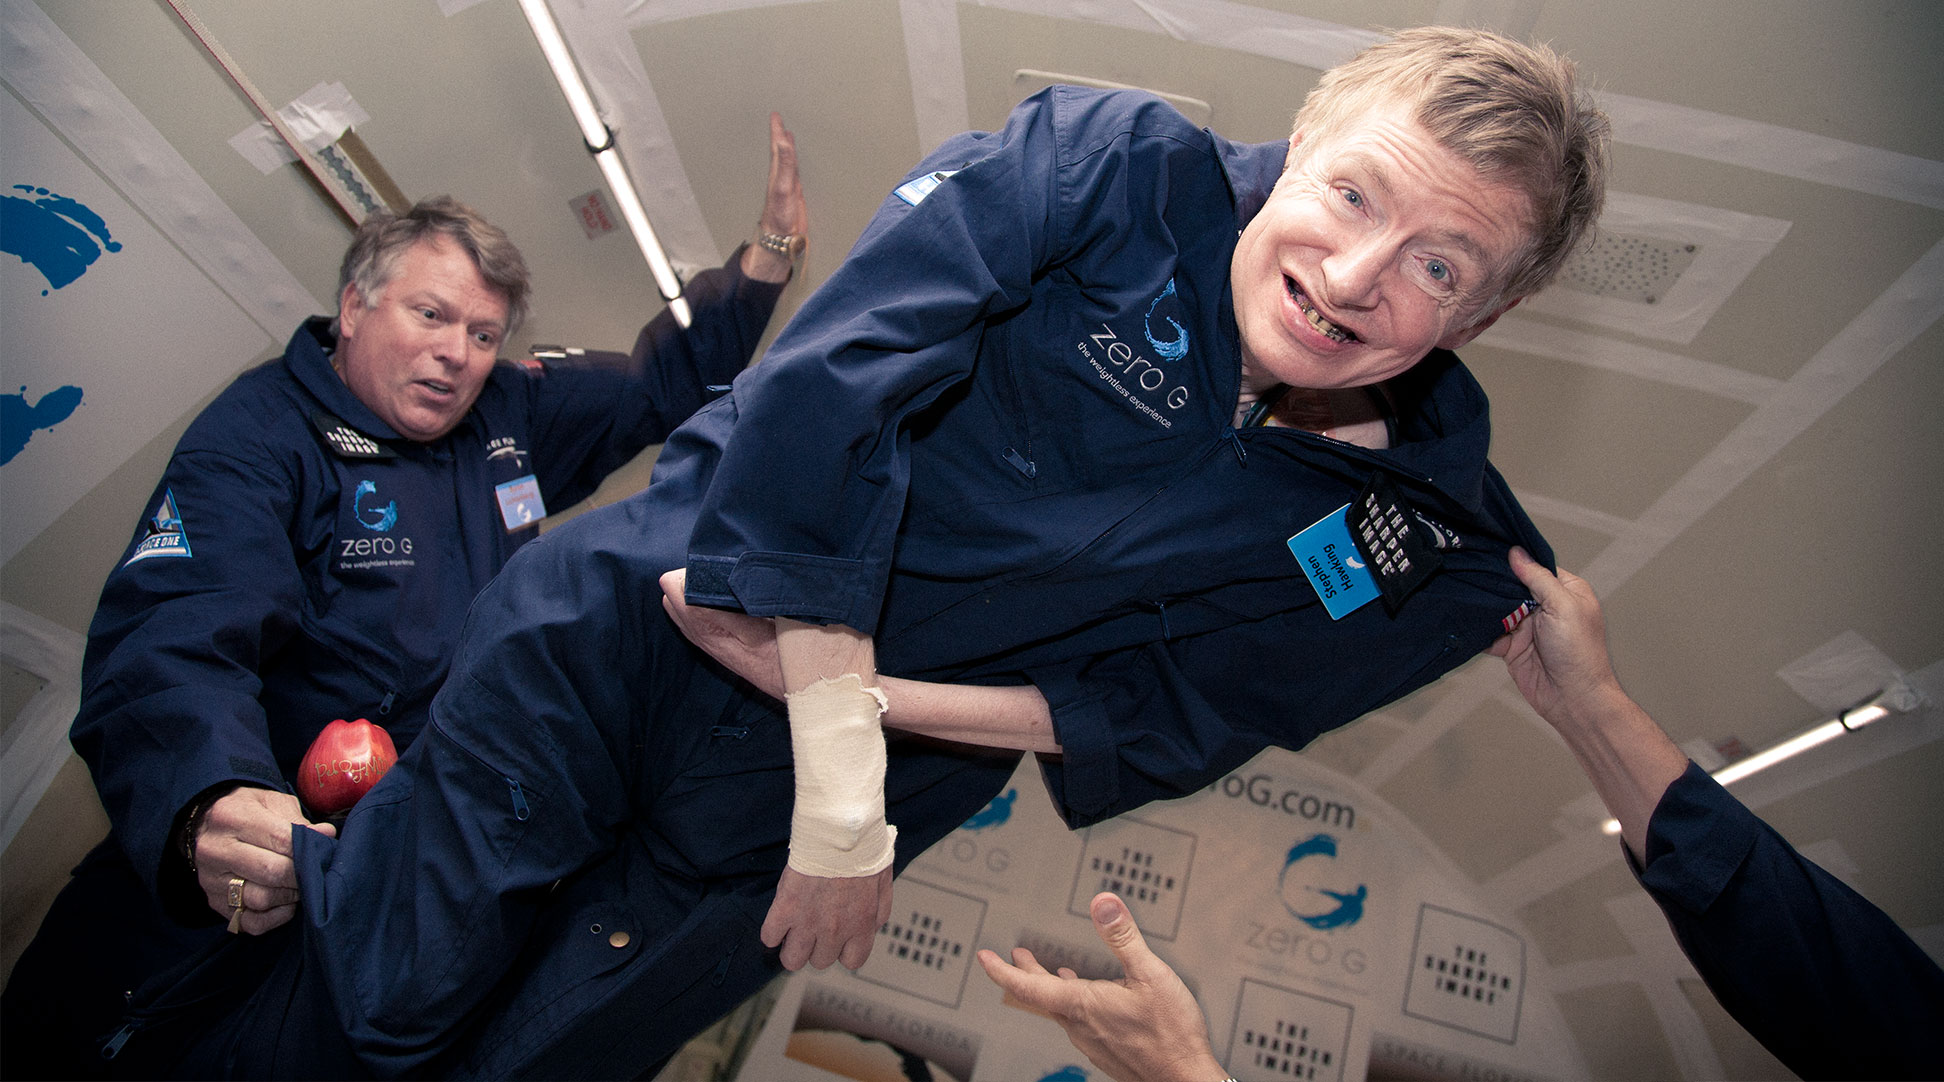 Stephen Hawking floats in a zero-gravity airplane environment. Photo by Steve Boxall